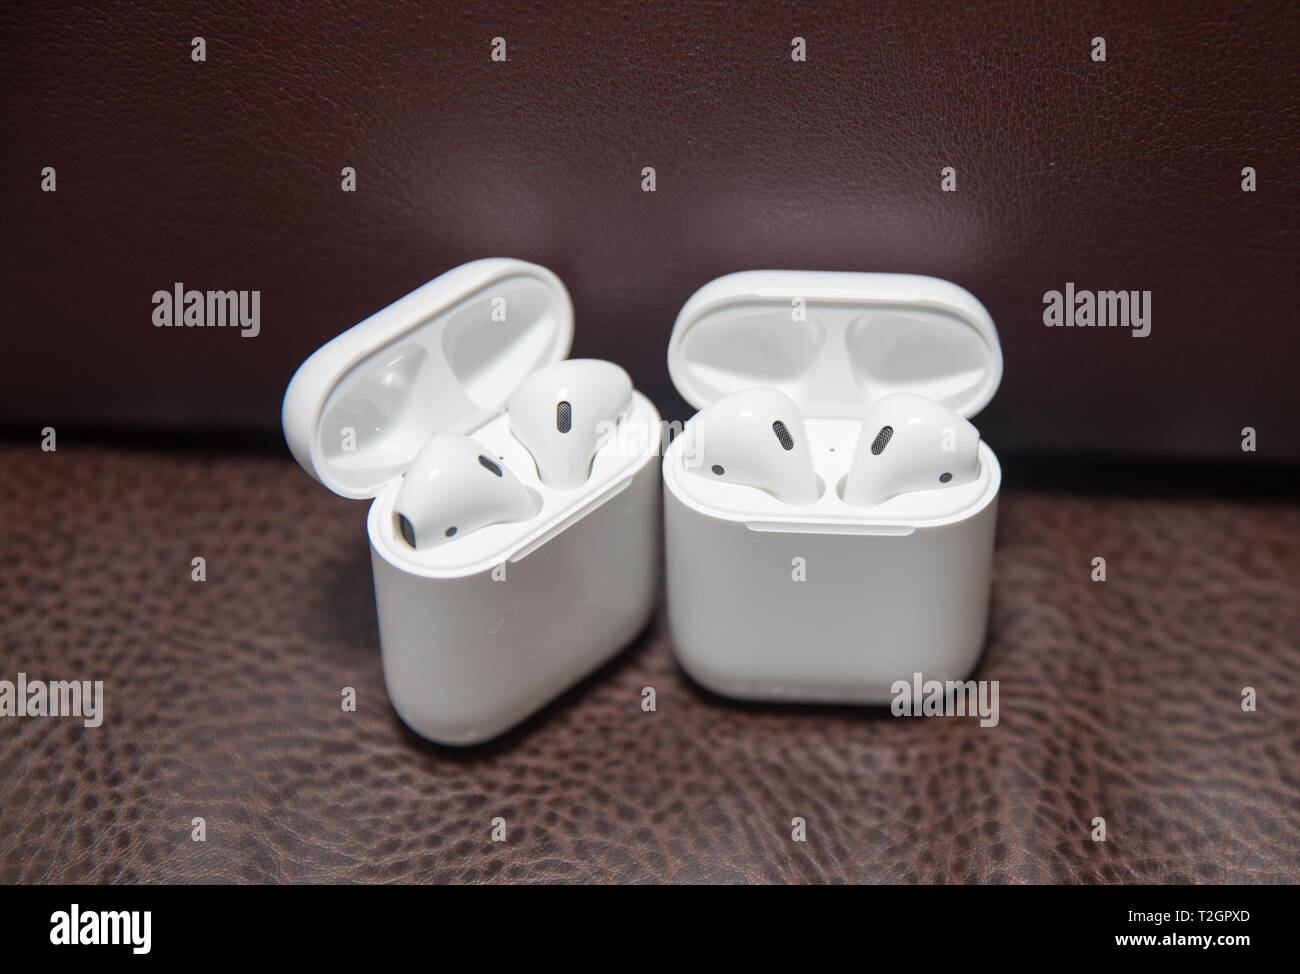 newest 0e119 e14bf Lawrence Township New Jersey, March 11, 2019:Apple AirPods wireless ...